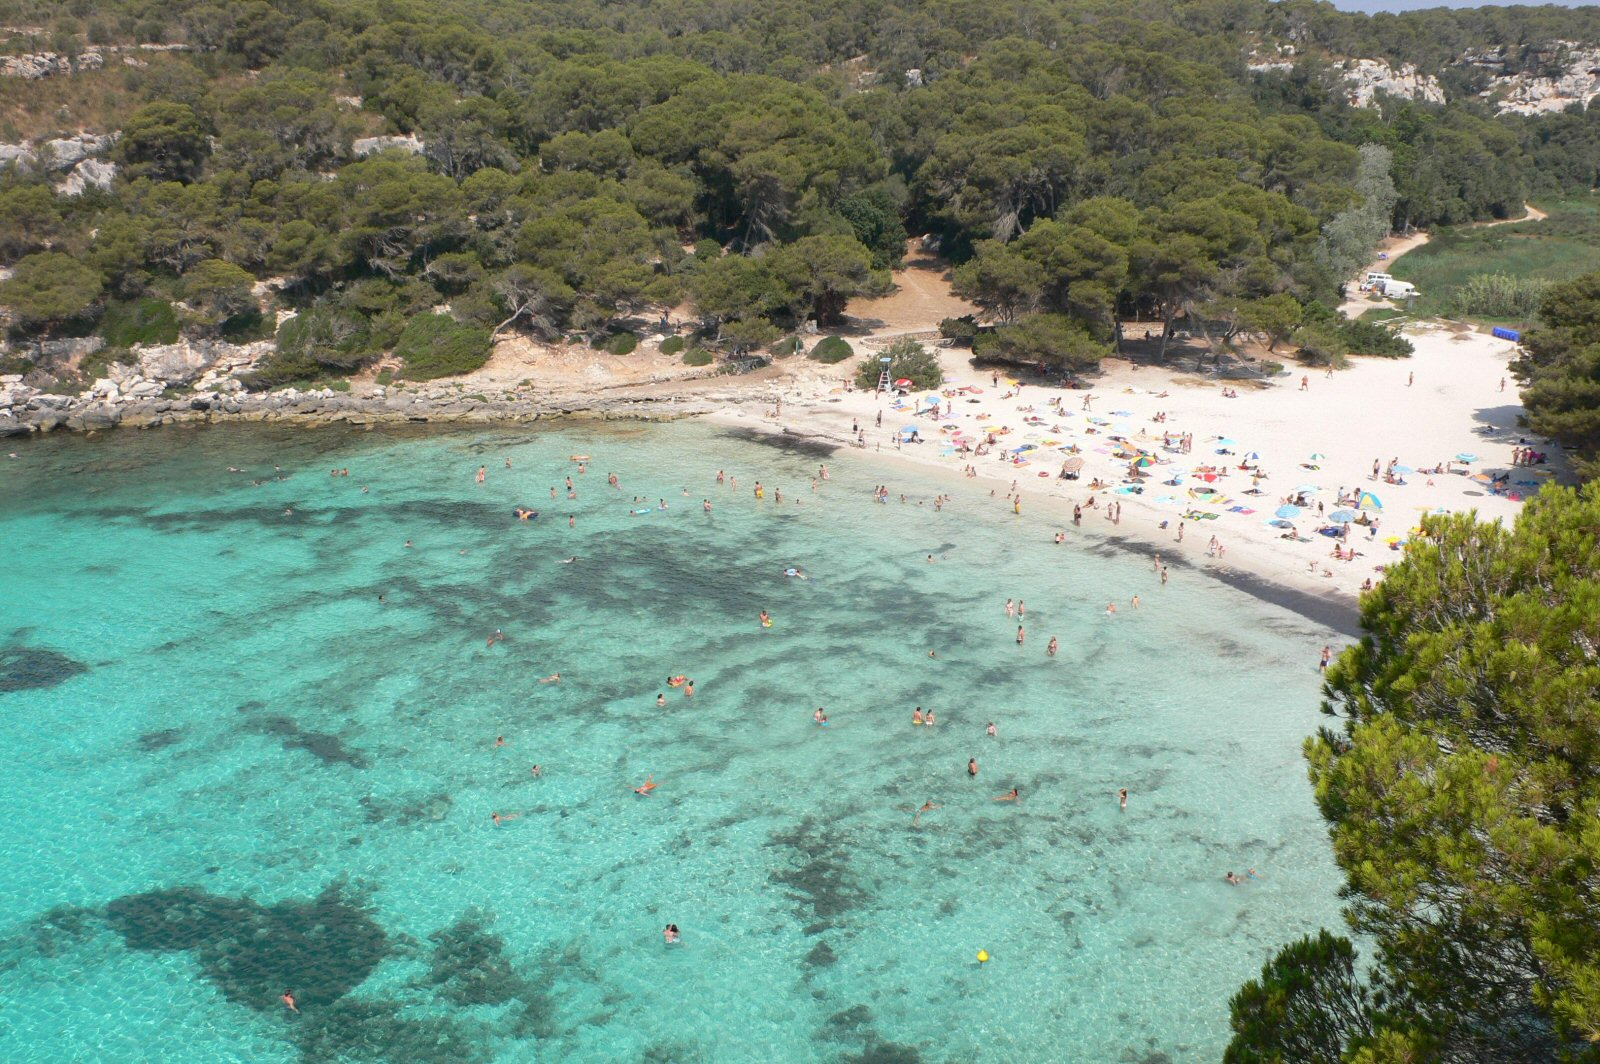 15. Macarella Beach in Menorca, Spain